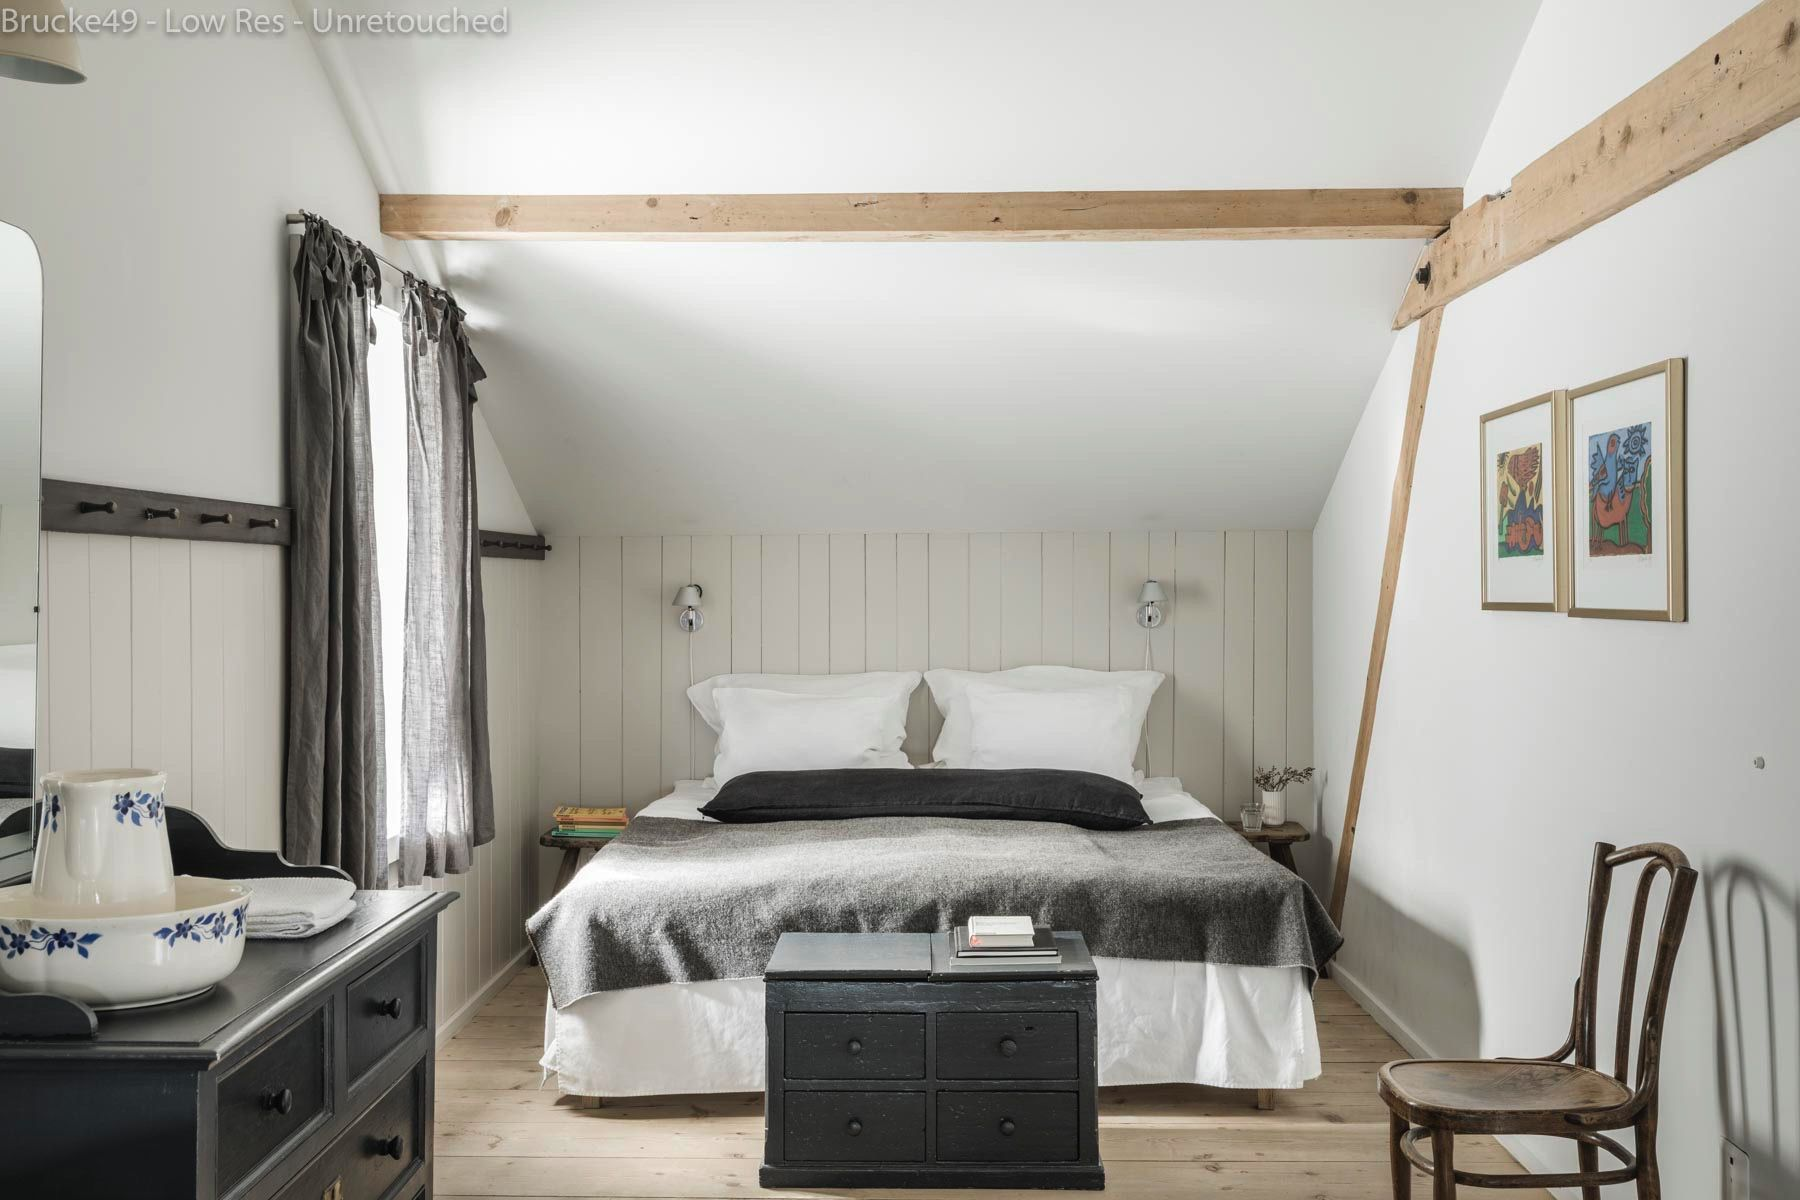 Bedroom interior roof brücke  valser room is on the top floor and stretches from the